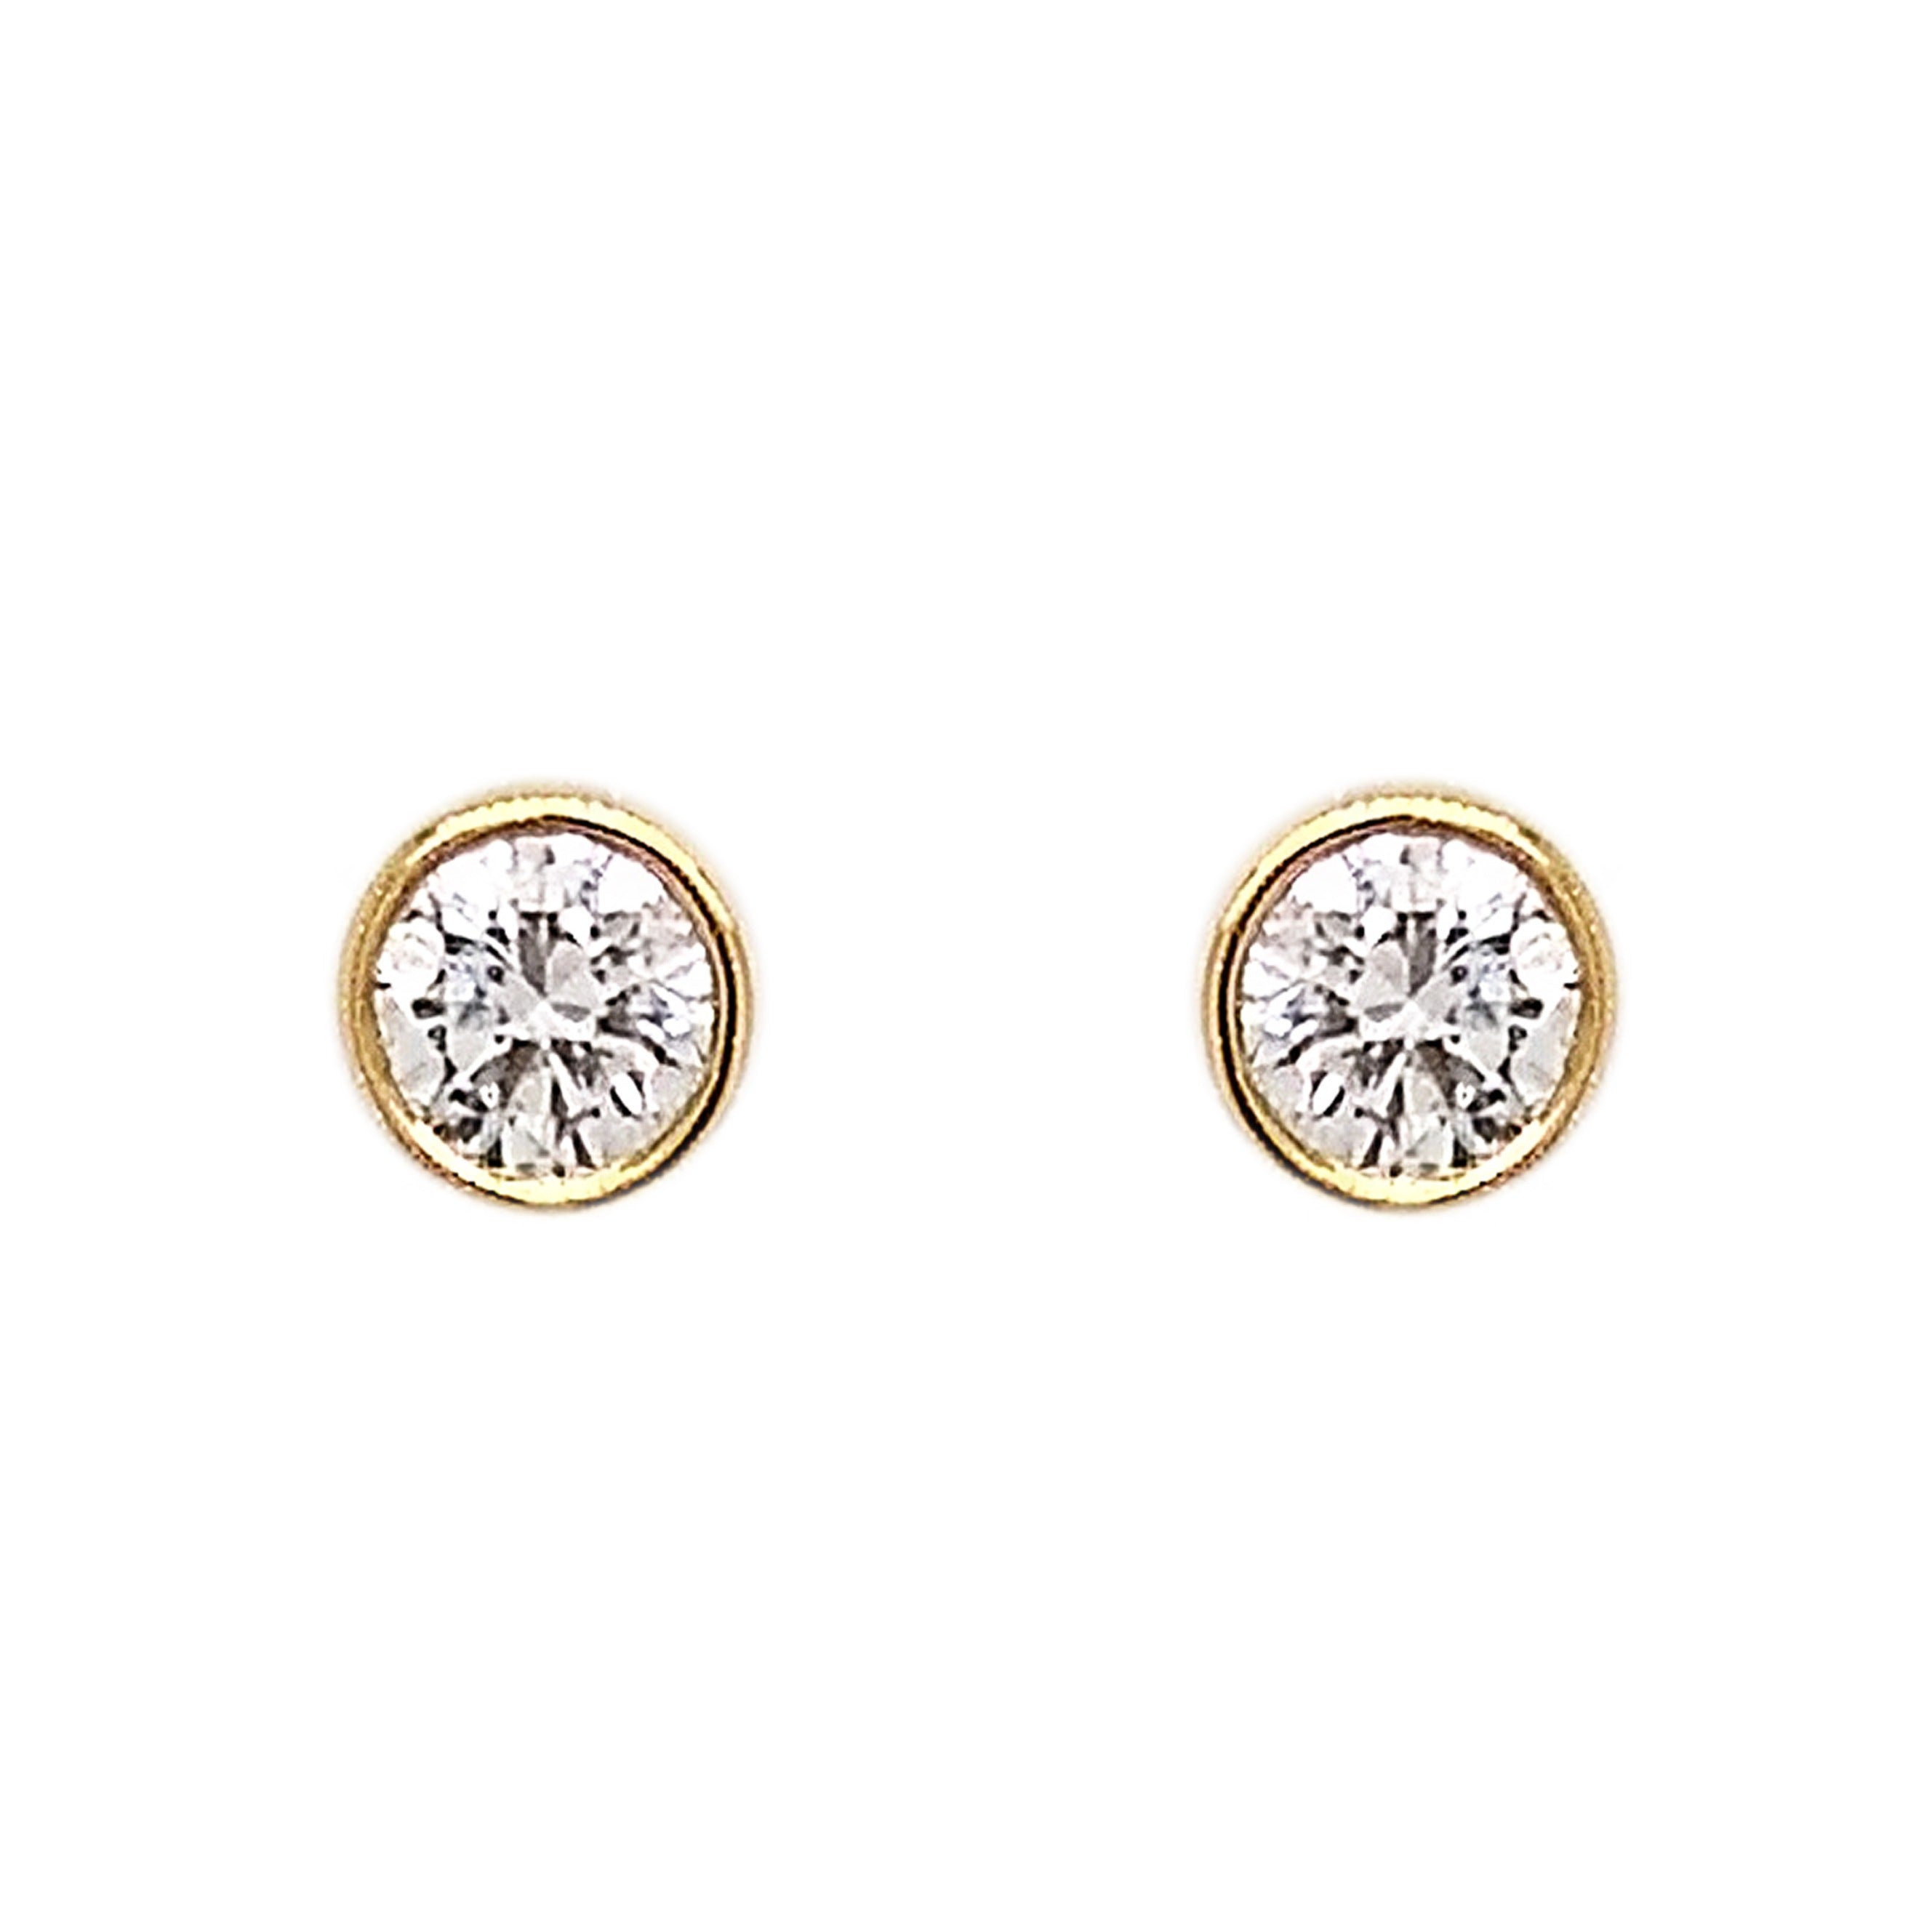 18ct Yellow Gold Cabochon Set Diamond Stud Earrings